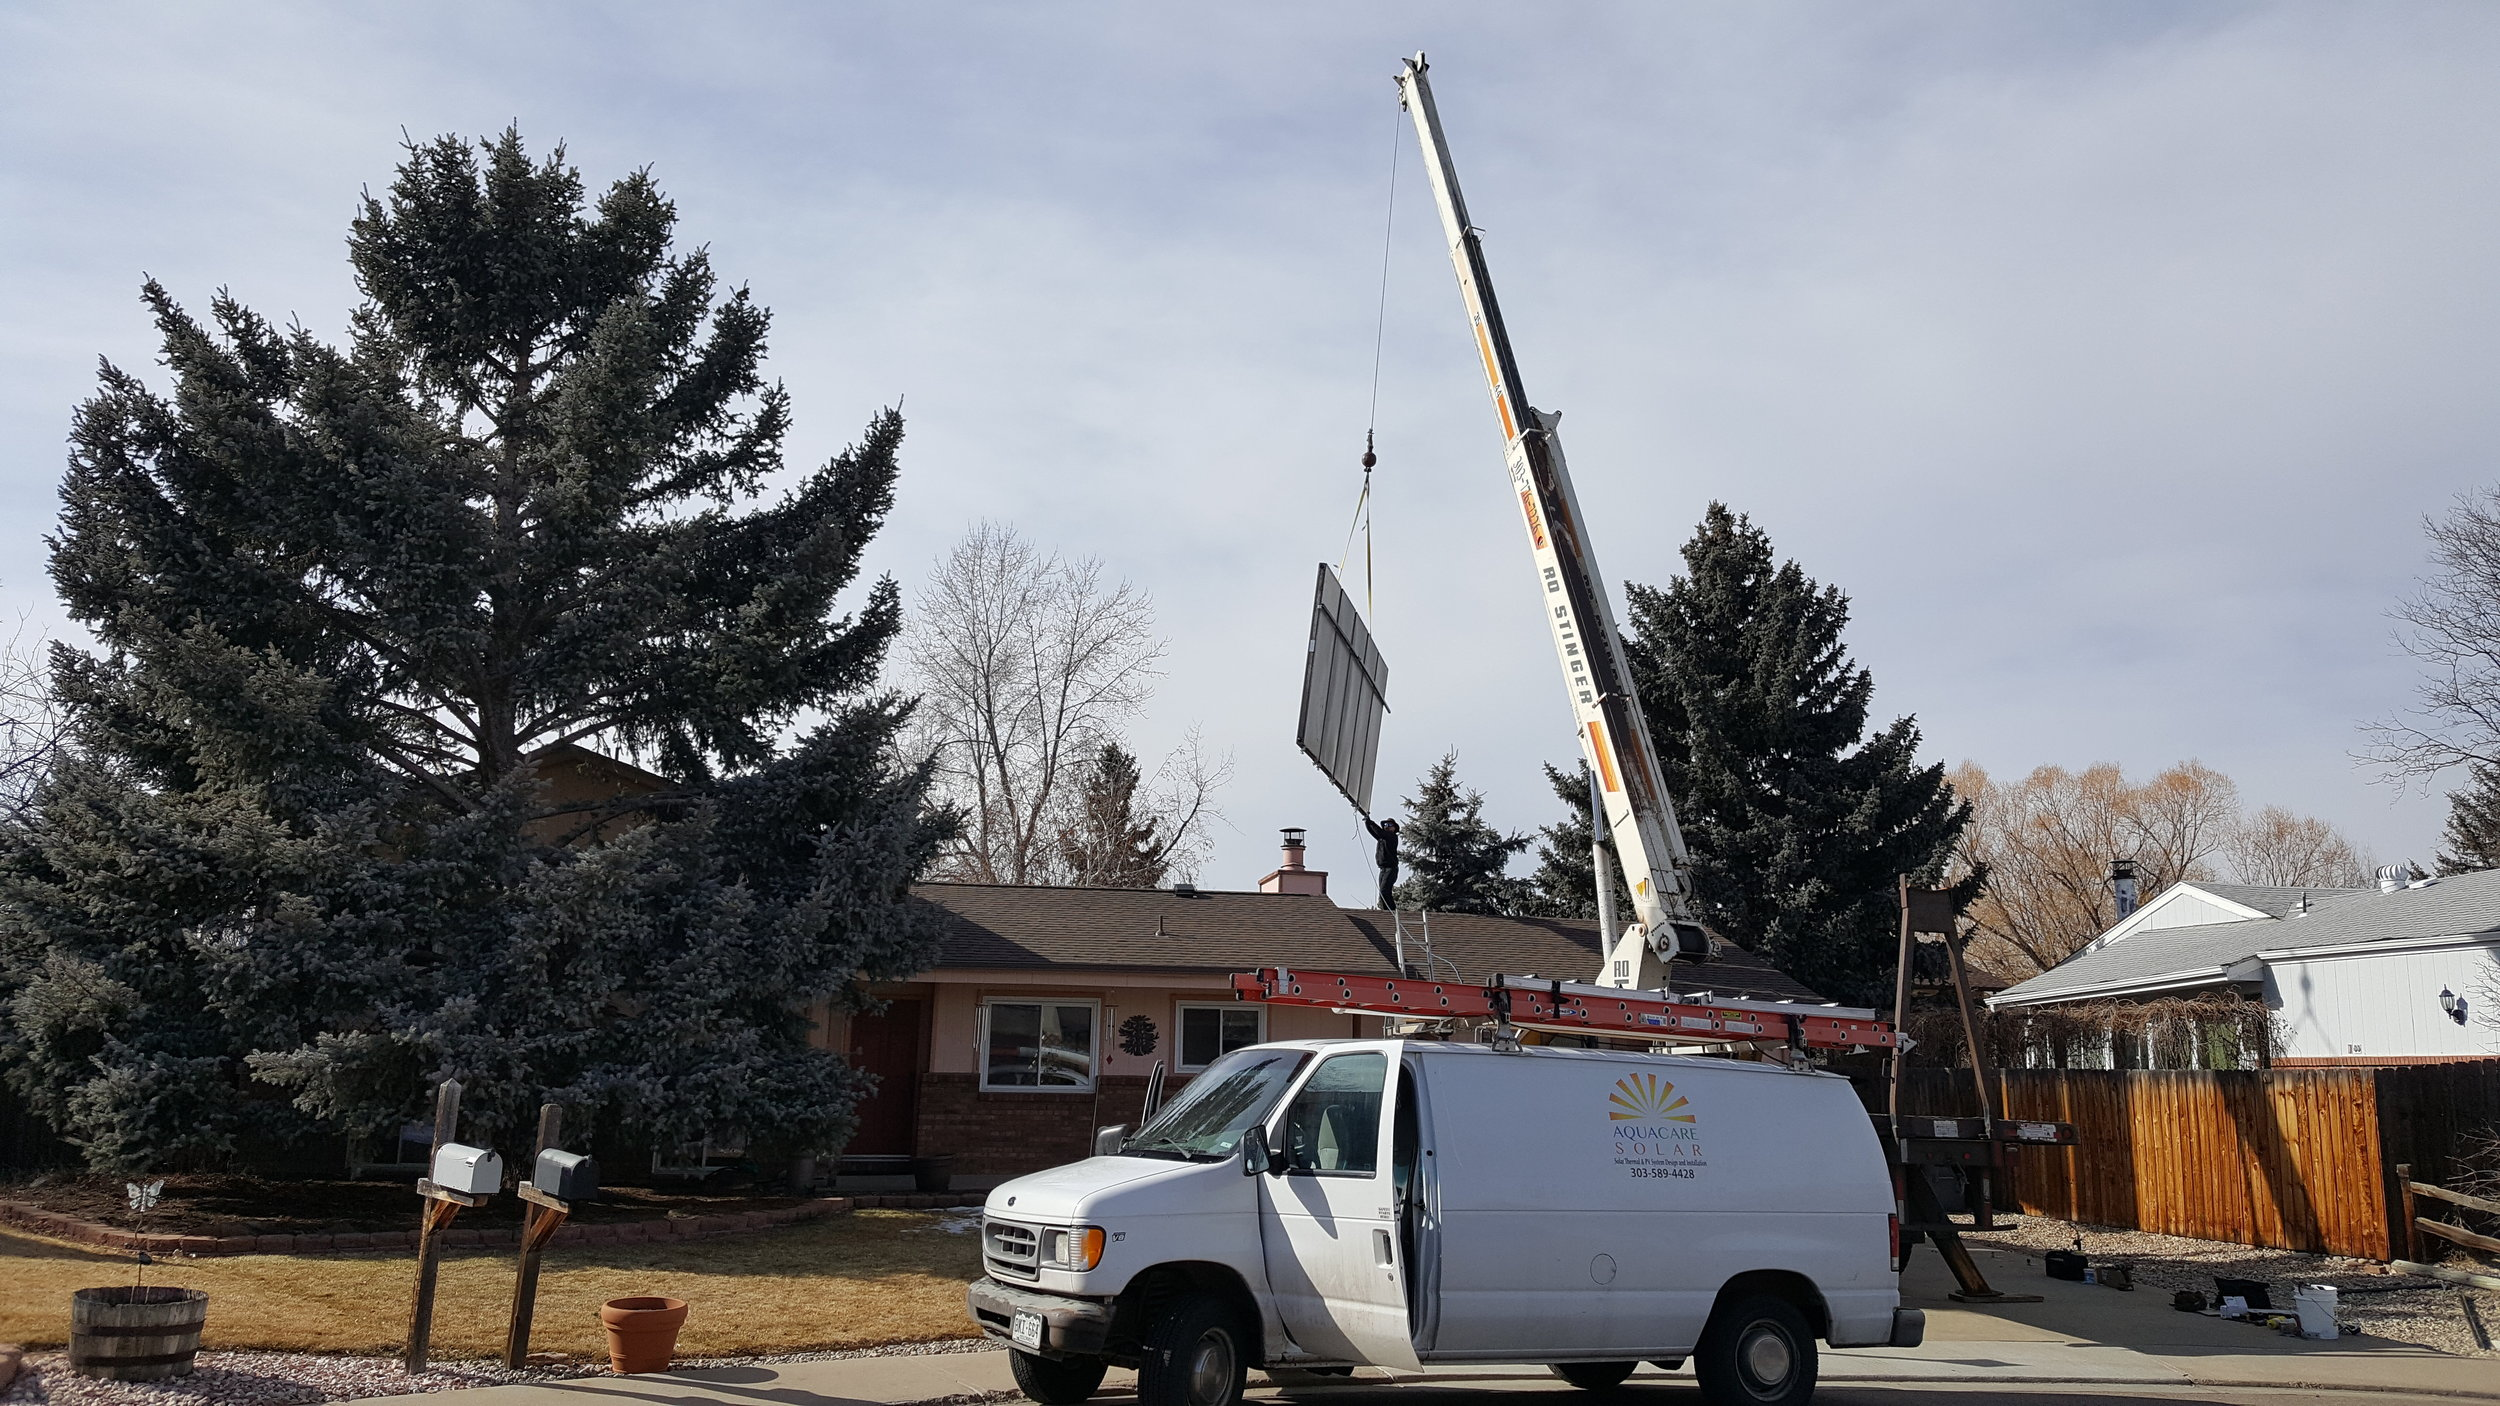 Flying the solar thermal system to be mounted in Longmont, Colorado